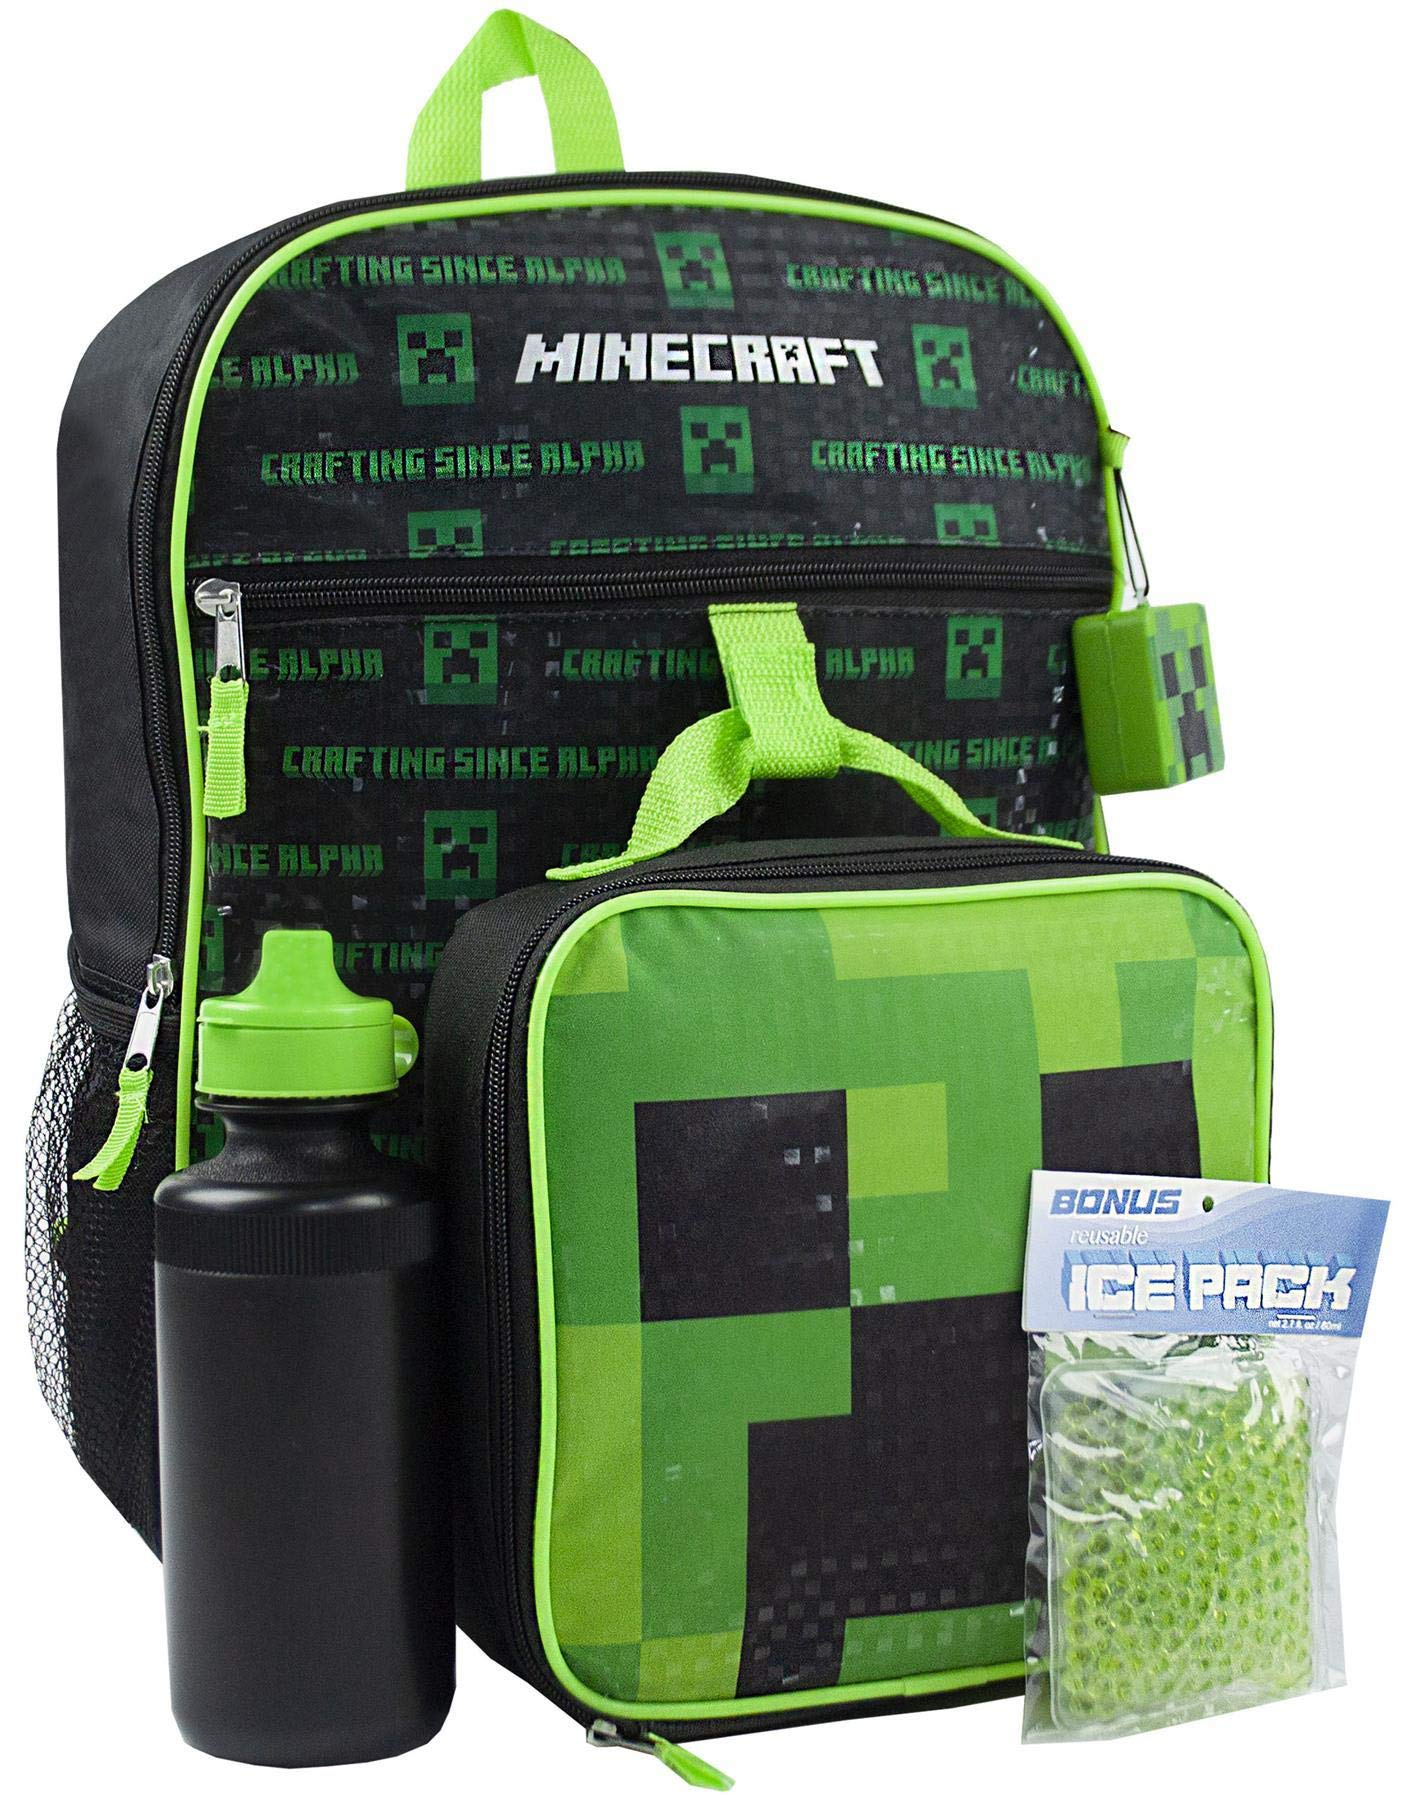 Minecraft Creeper 5 Piece Backpack Set Lunch Box Water Bottle Ice Pack Squishy by Minecraft